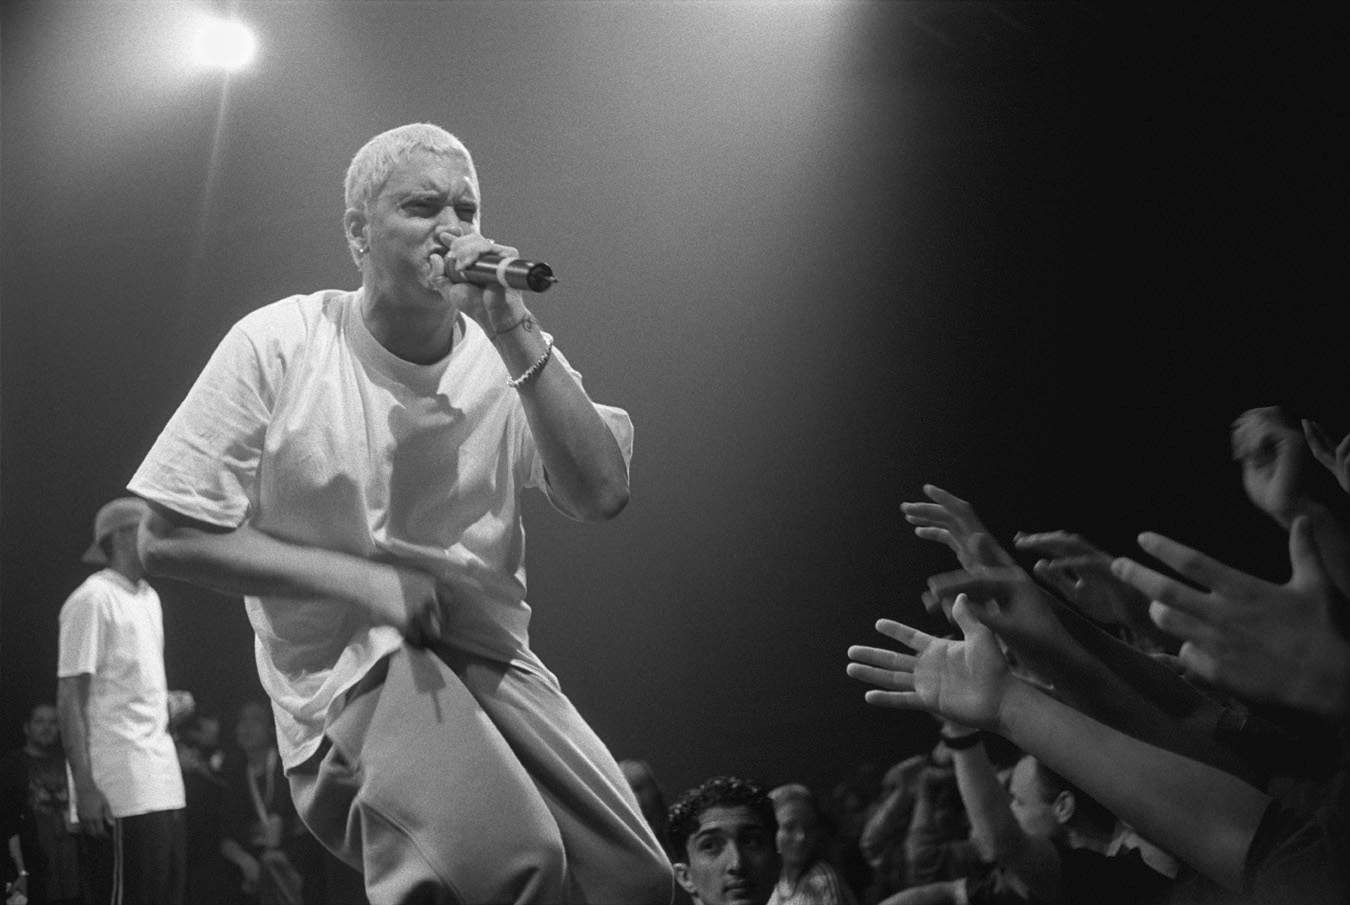 marshall mathers aka eminem one of the most controversial singers out there The show was such a success that there will likely  with more sophisticated pieces such as lookin' out for number one after  marshall mathers (aka eminem).